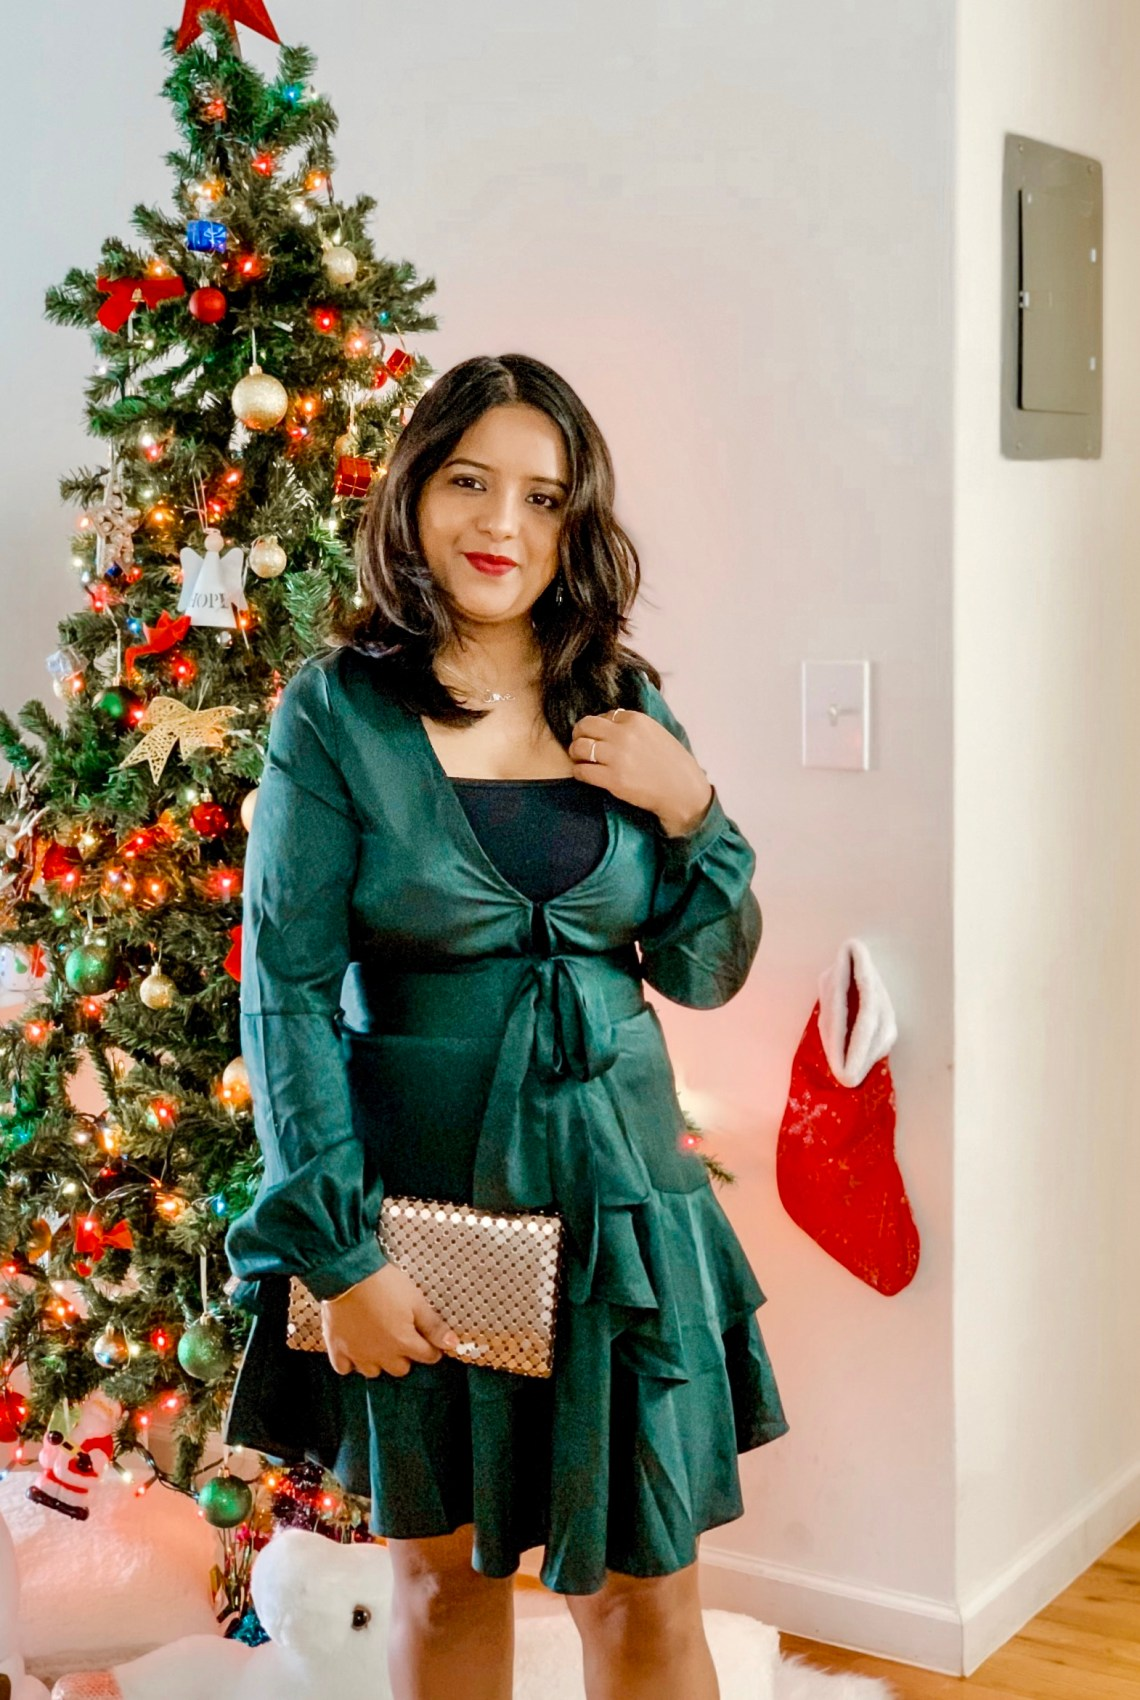 Holiday outfit ideas 2019